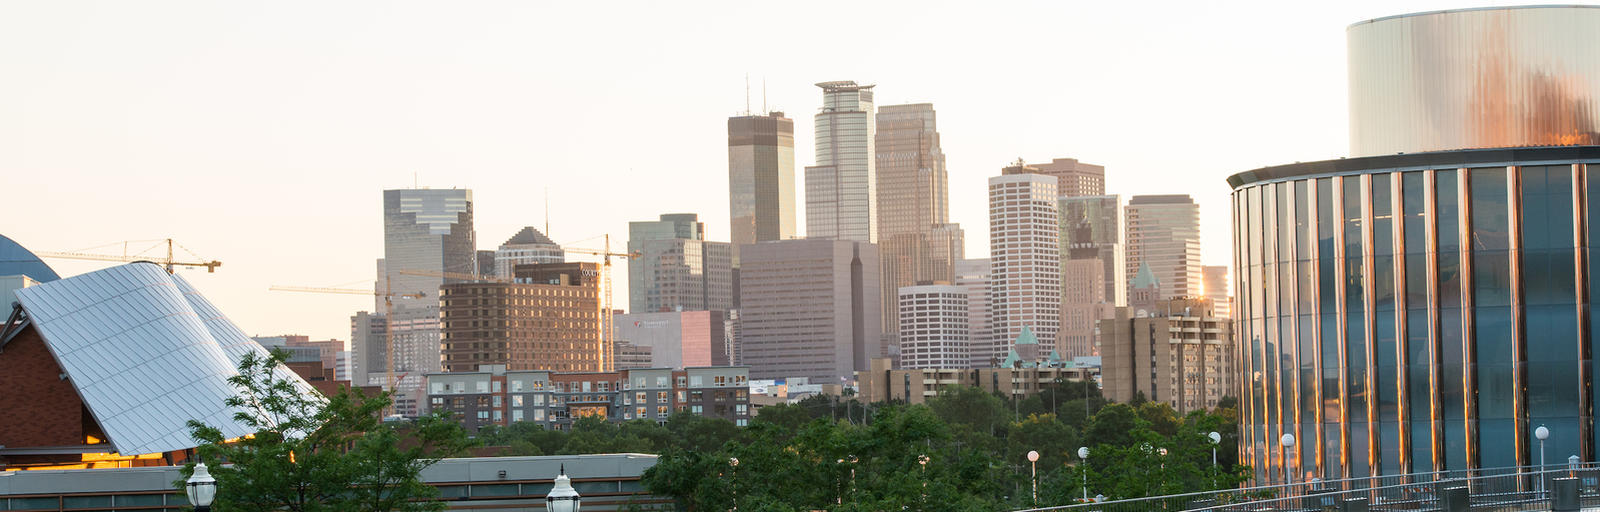 Minneapolis skyline as seen from University of Minnesota campus